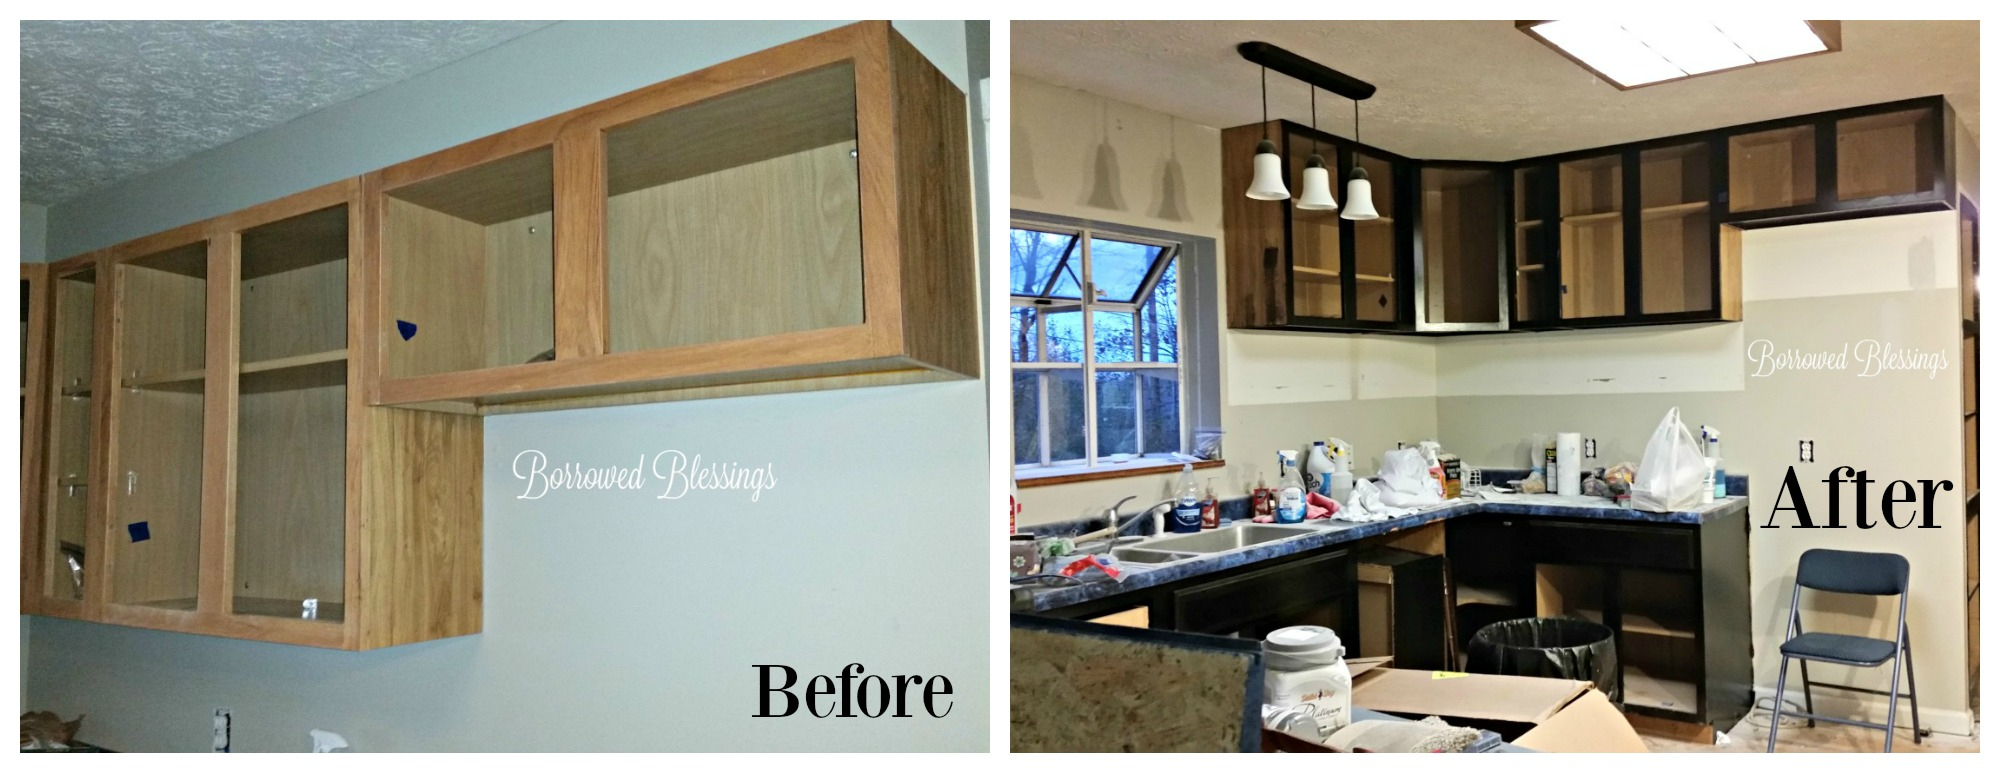 Refinishing our Kitchen Cabinets - The Good, The Bad and The VERY ...